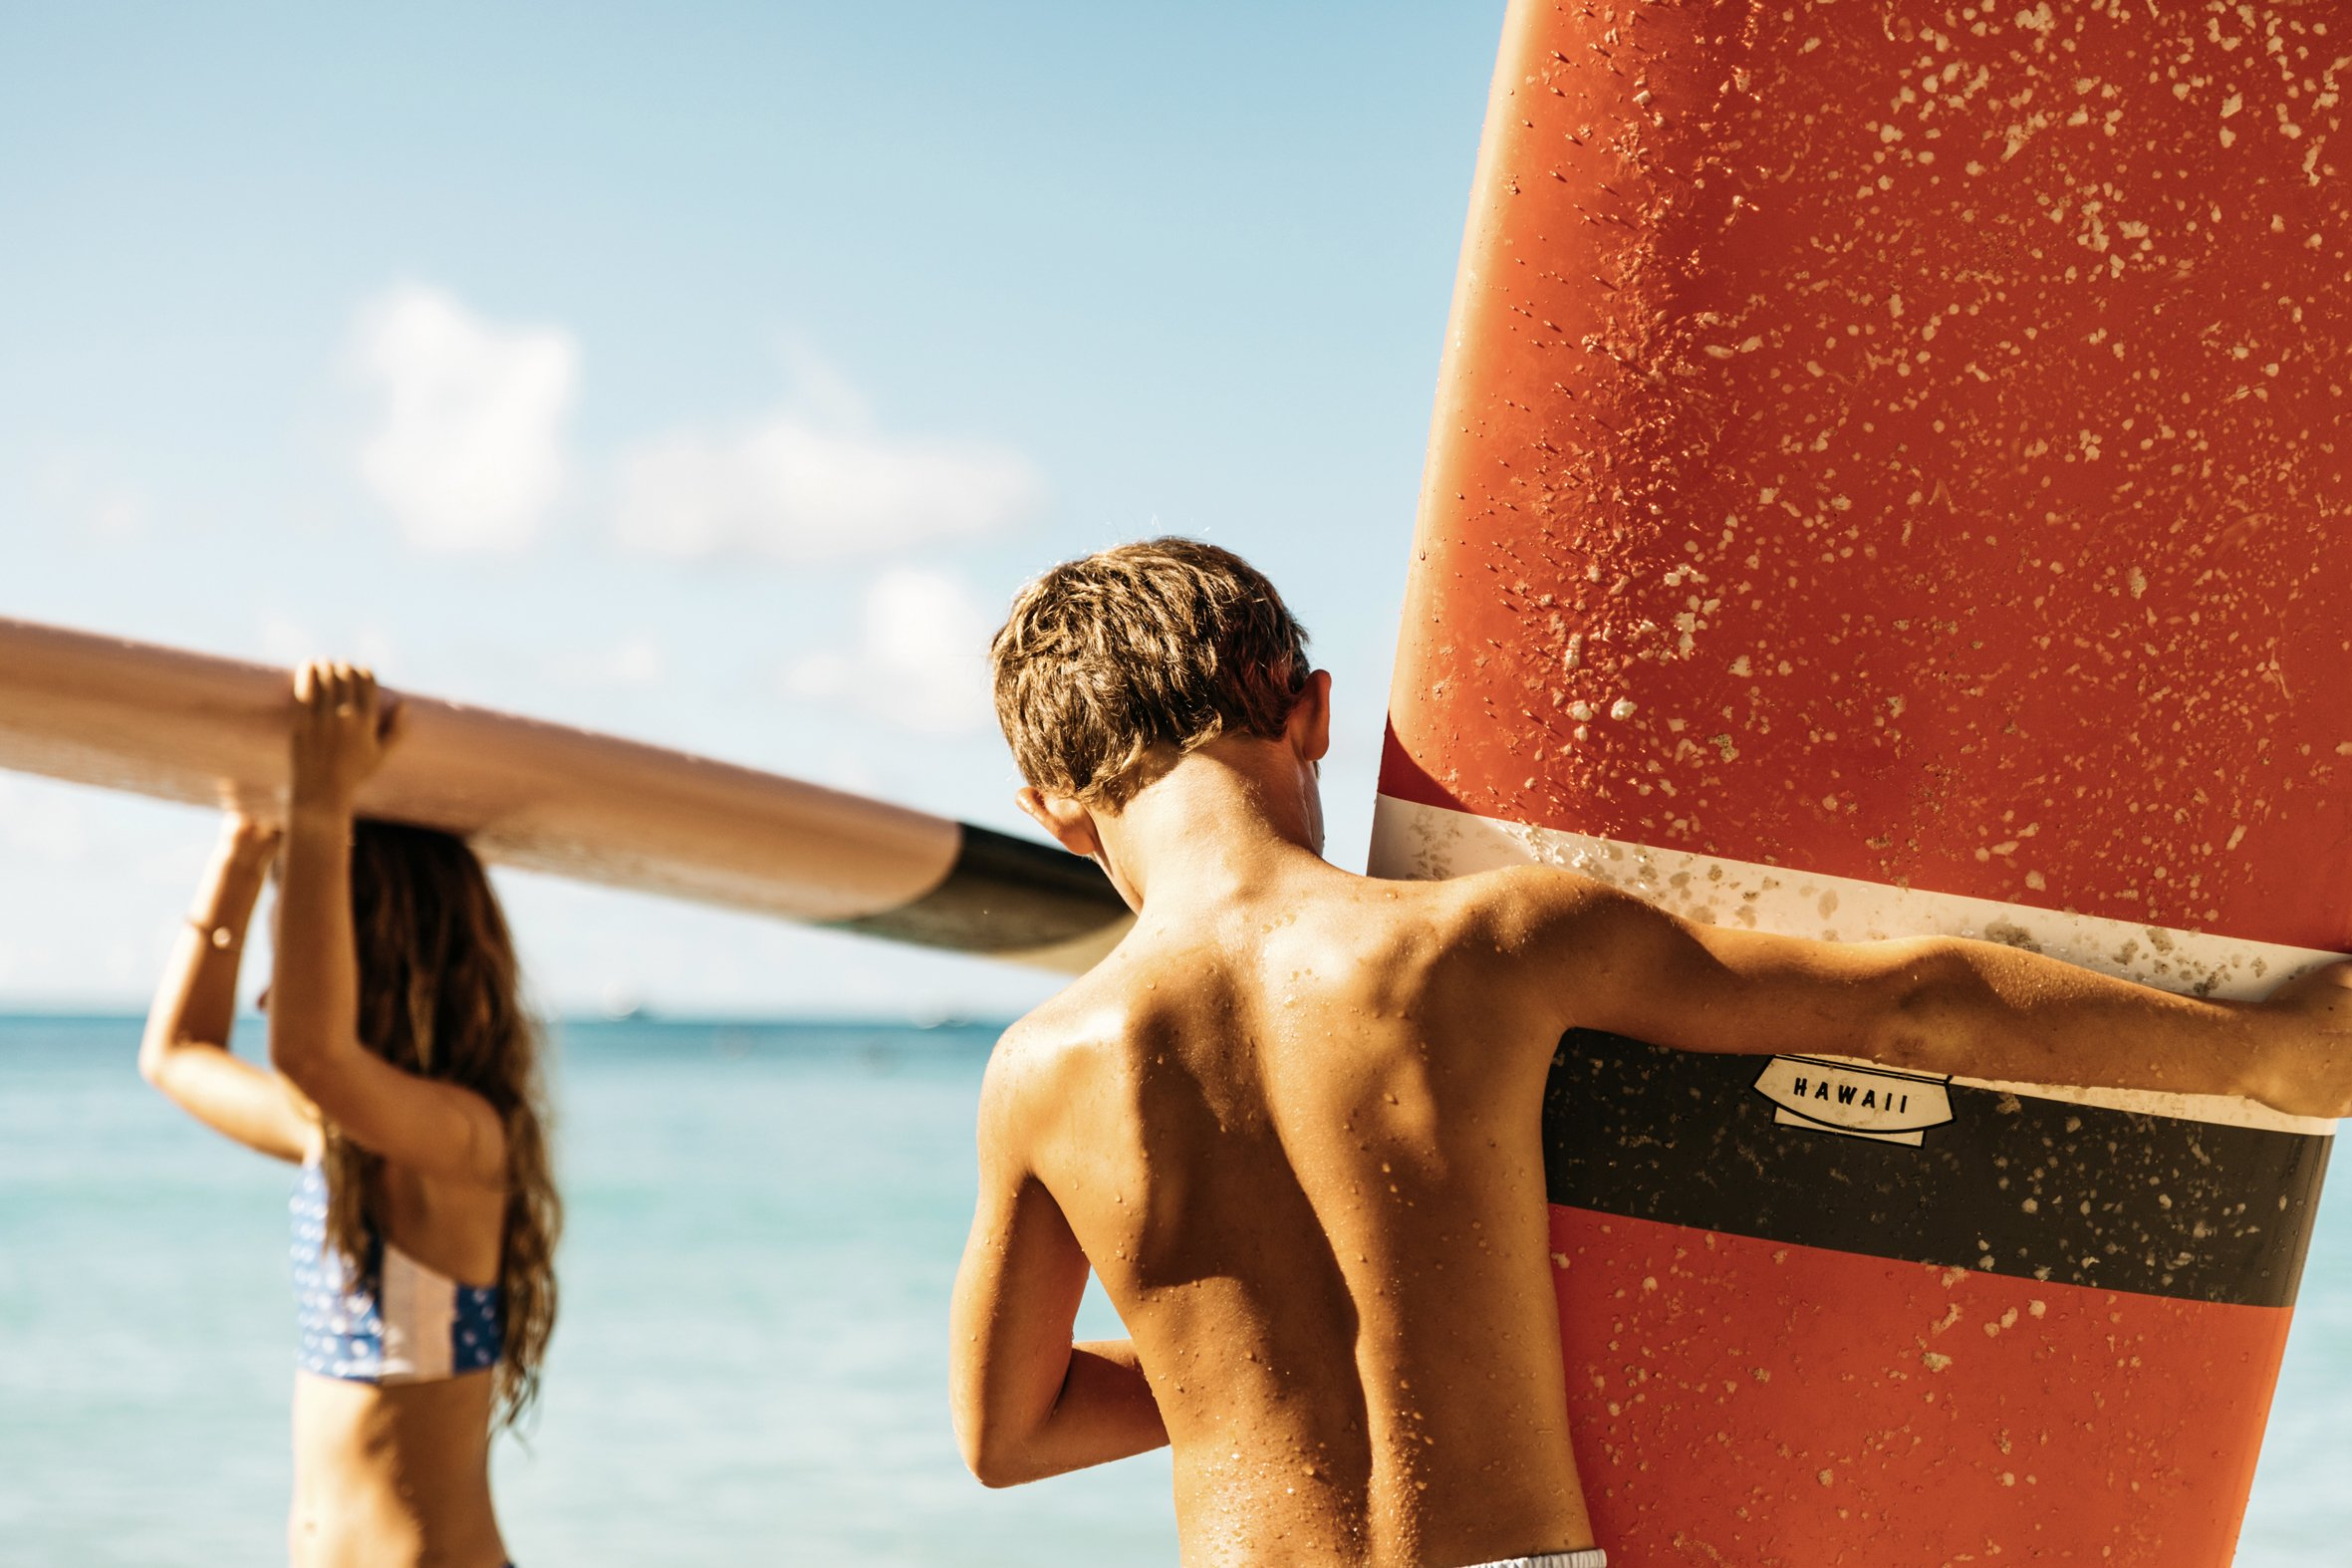 Two kids carry surfboards on the beach in Hawaii.